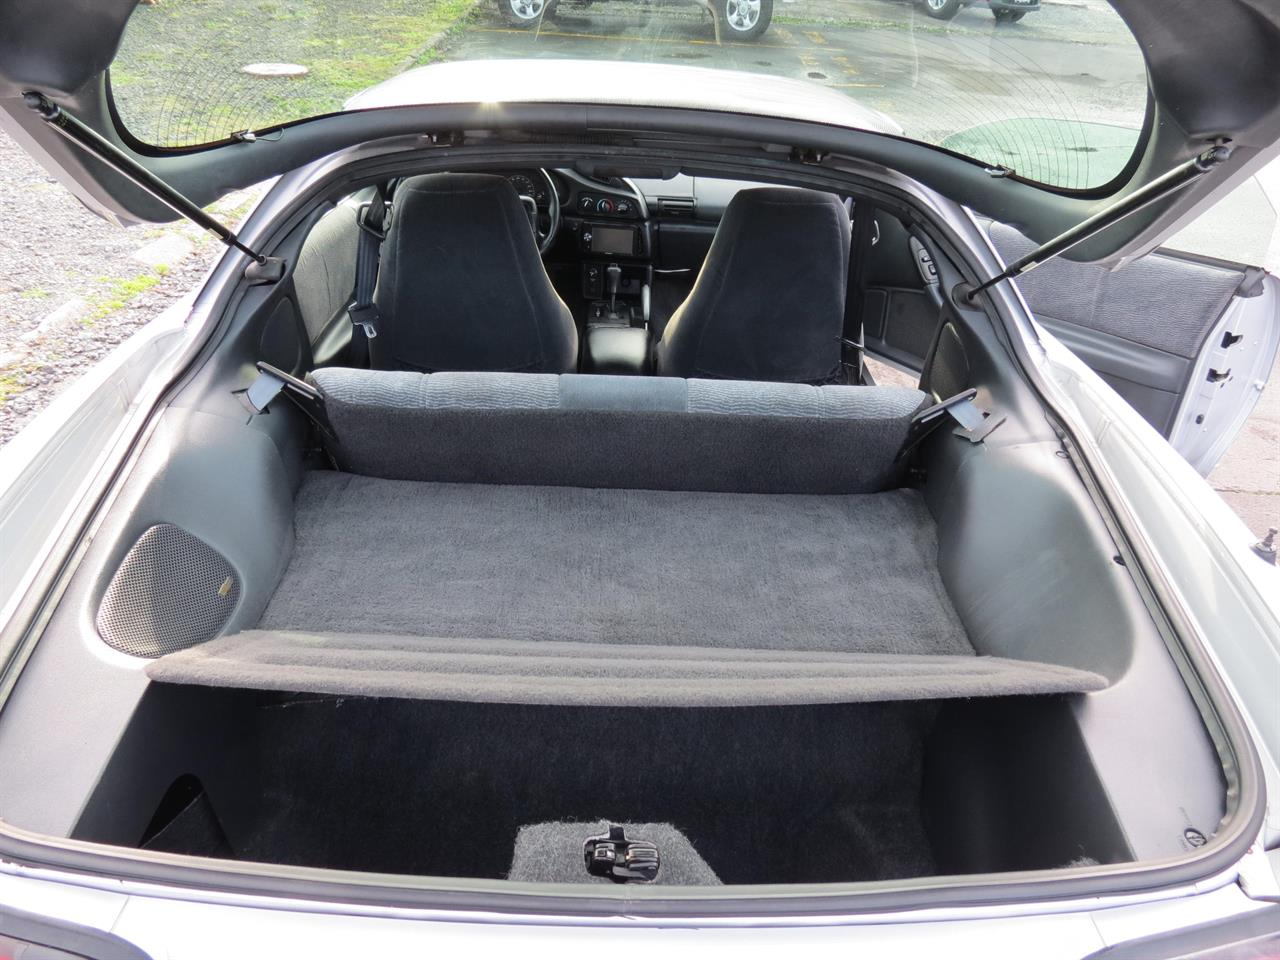 1996 Chevrolet Camaro only $64 weekly